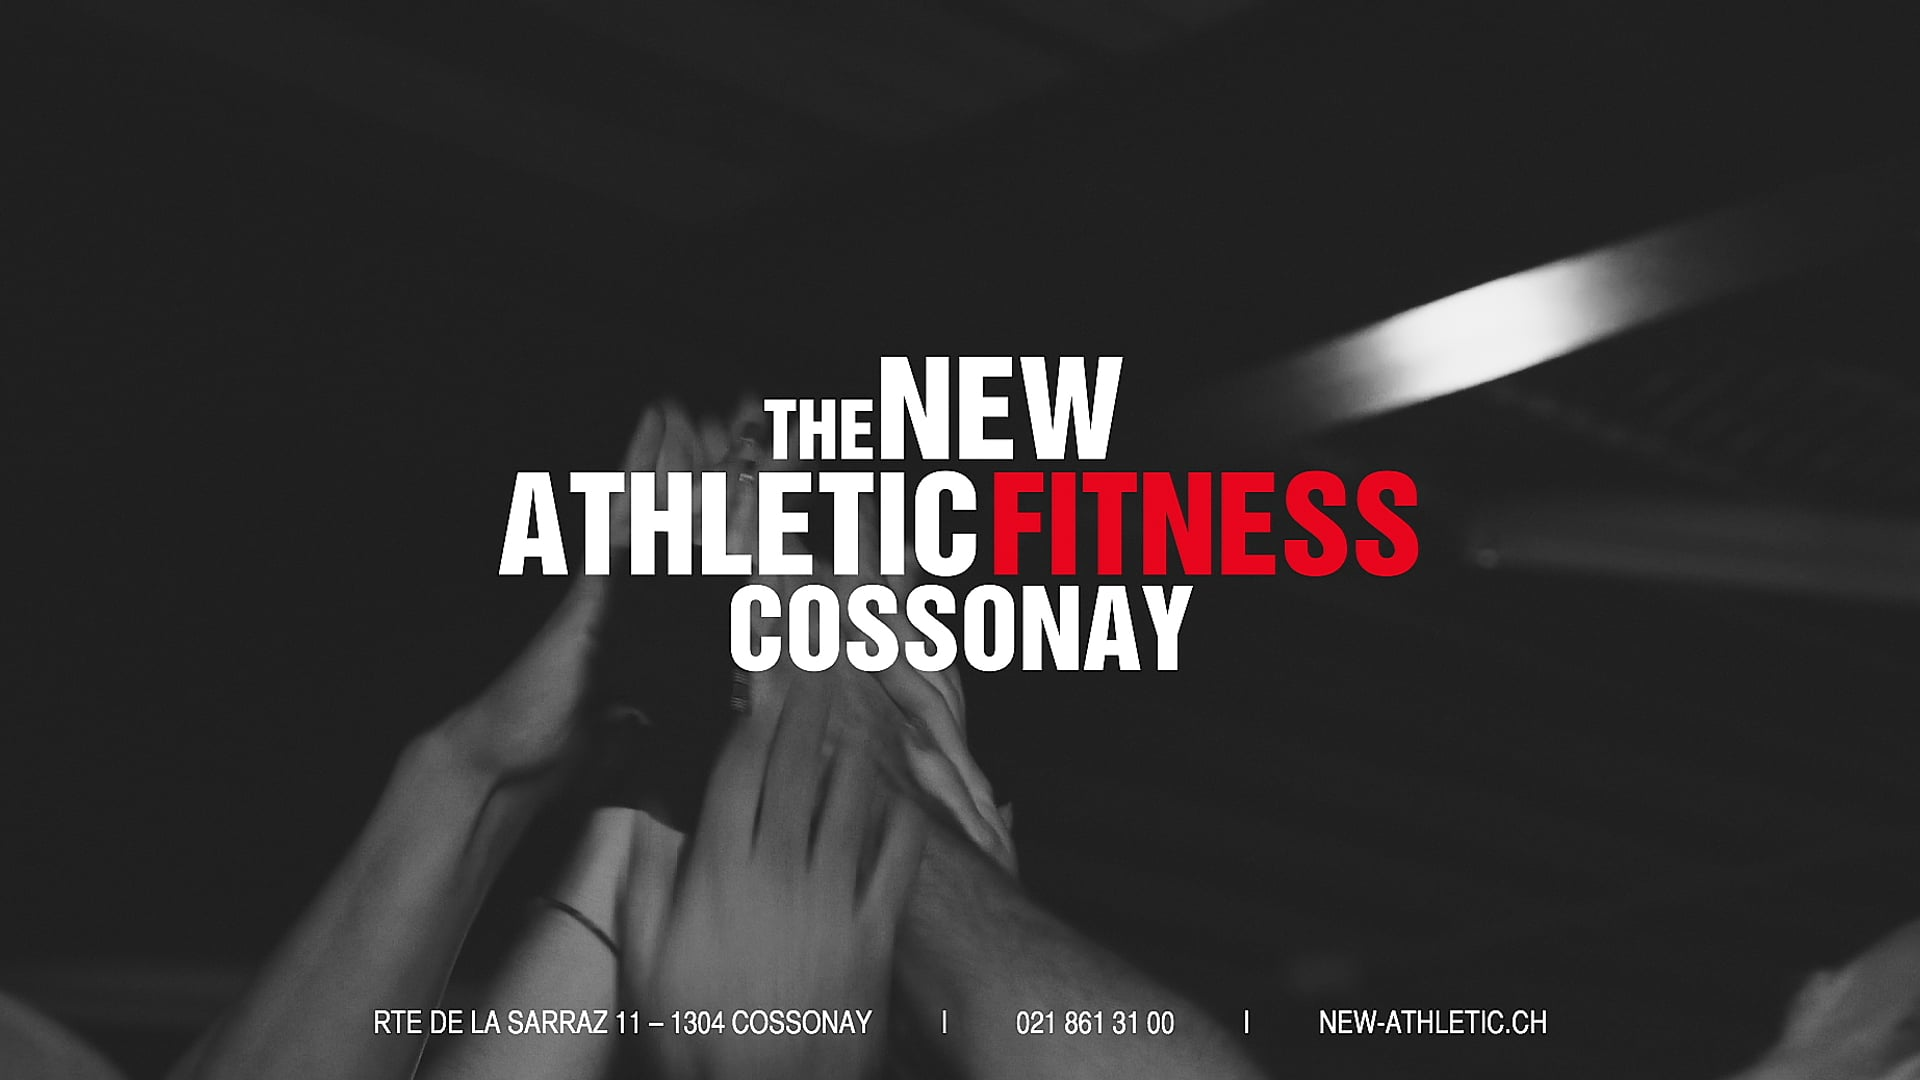 THE NEW ATHLETIC FITNESS - ADS